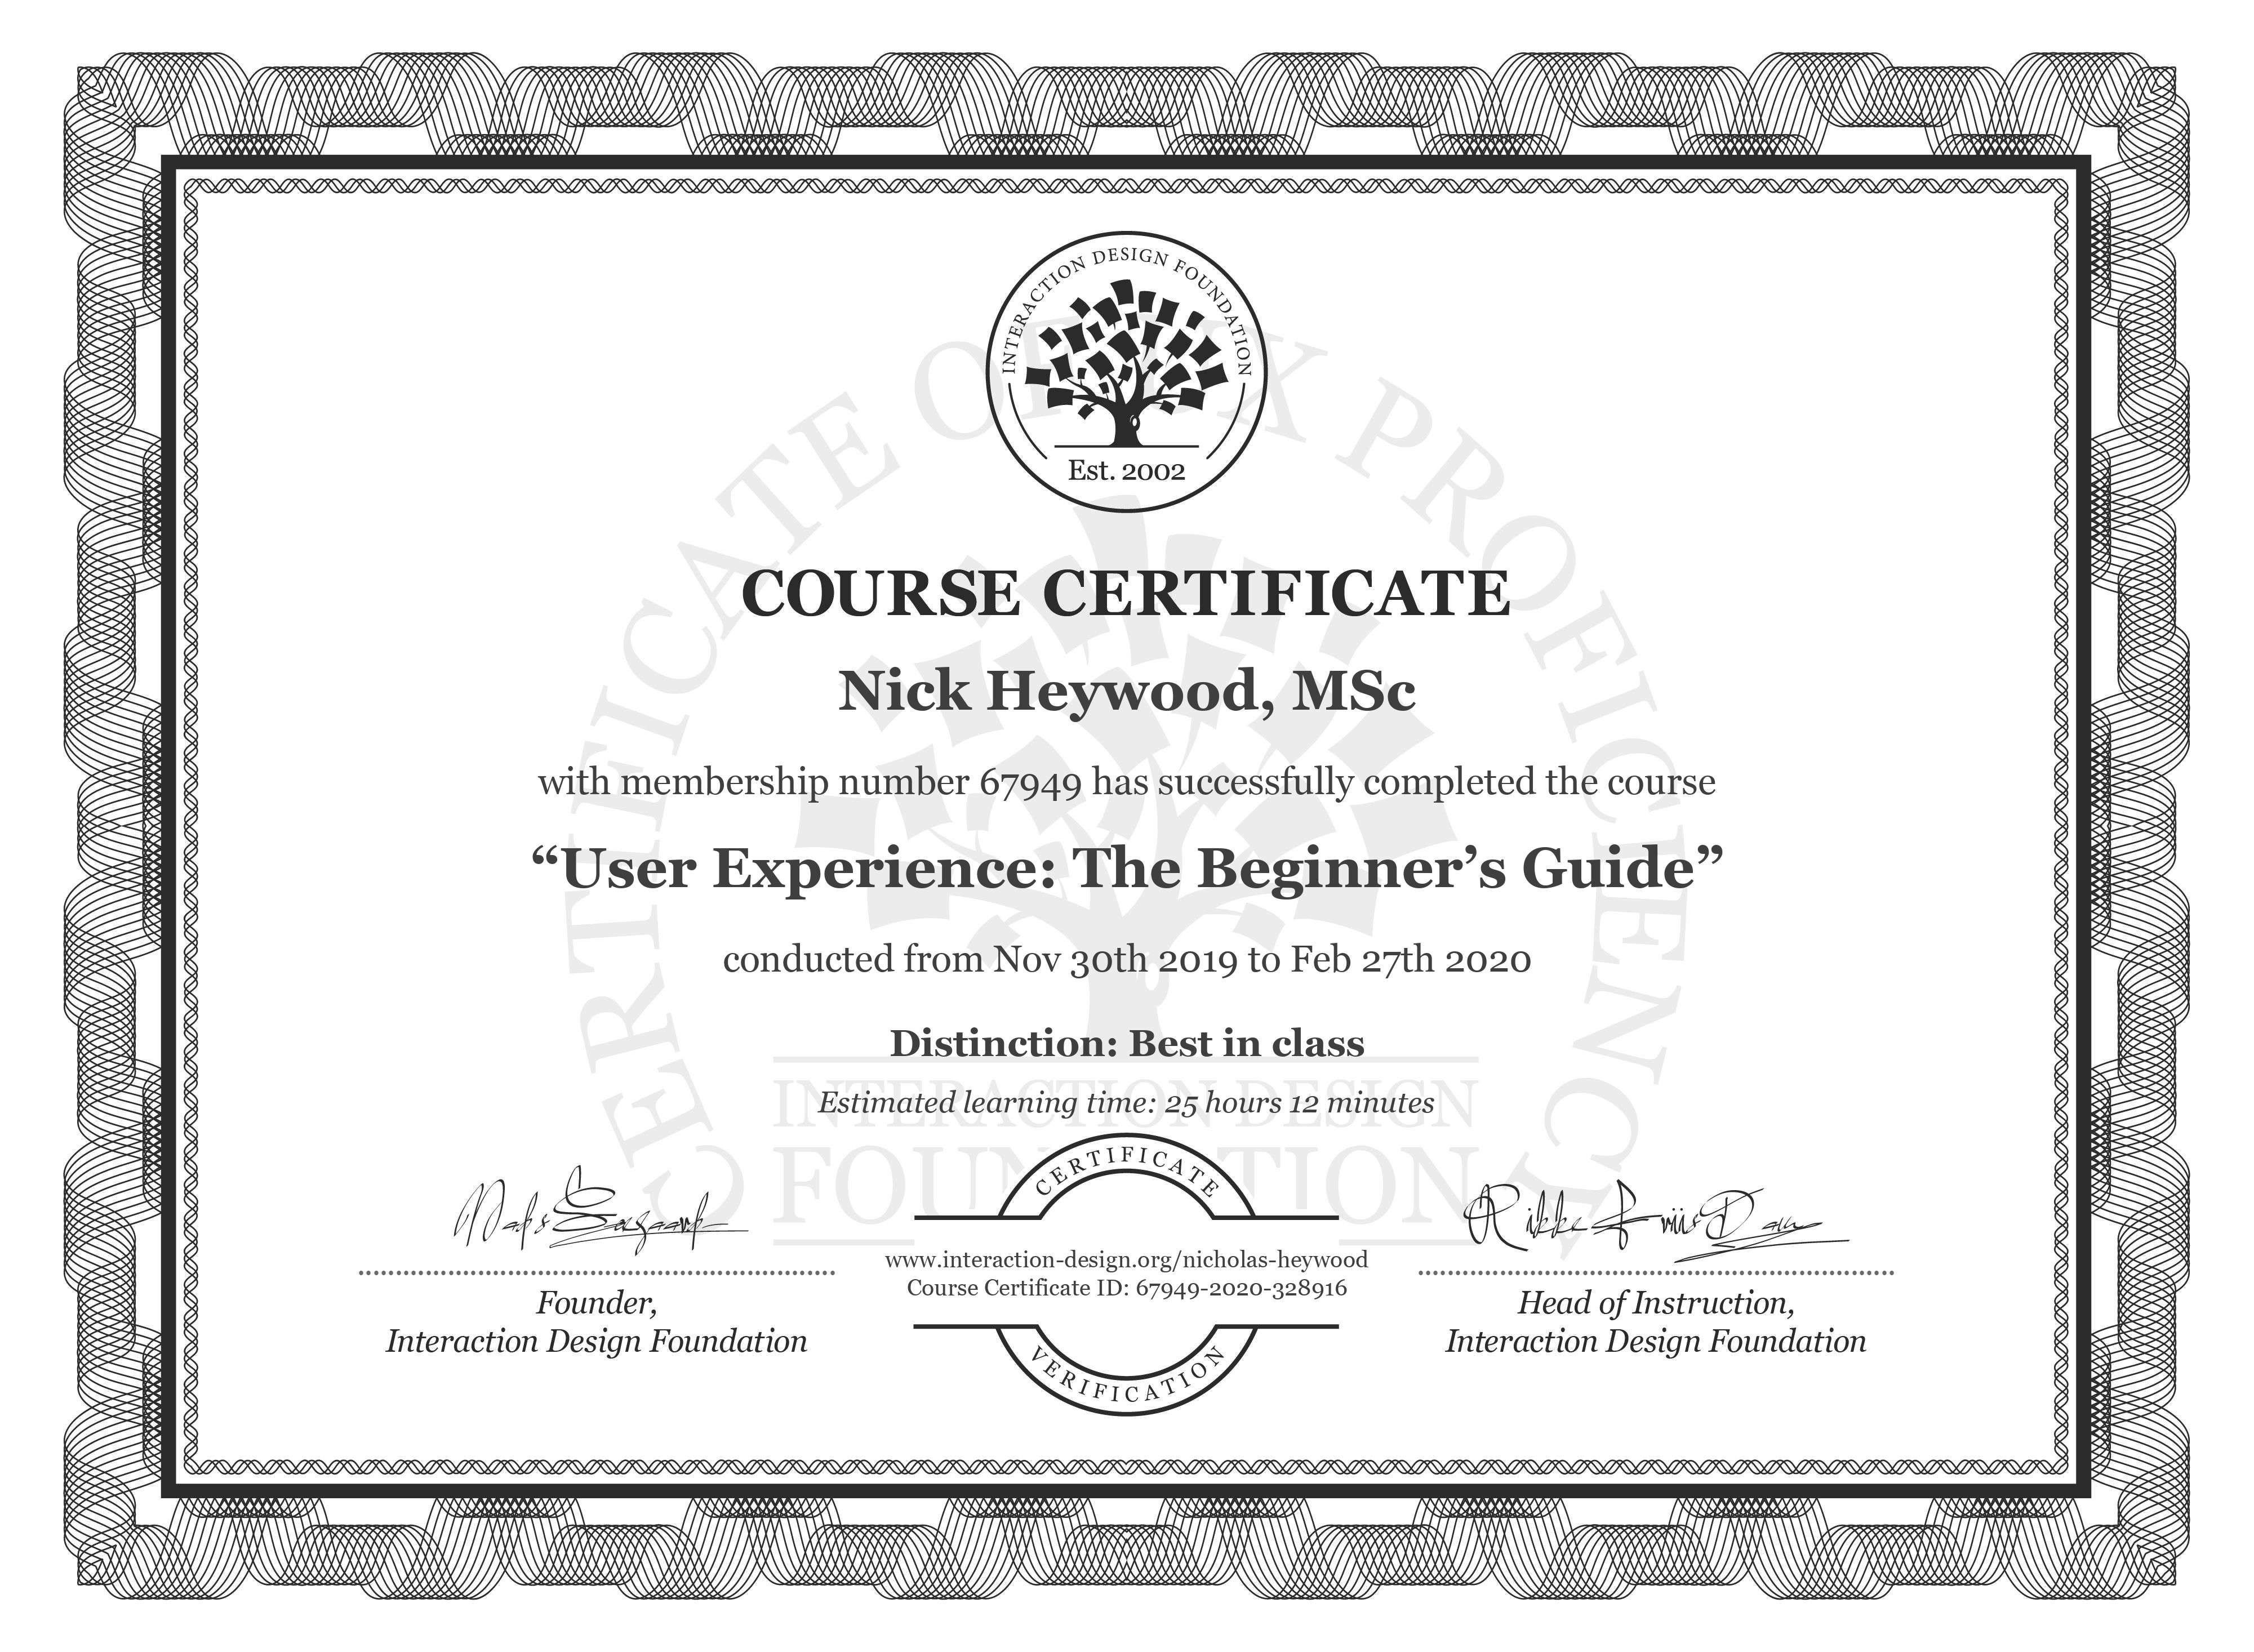 Nicholas Heywood's Course Certificate: Become a UX Designer from Scratch